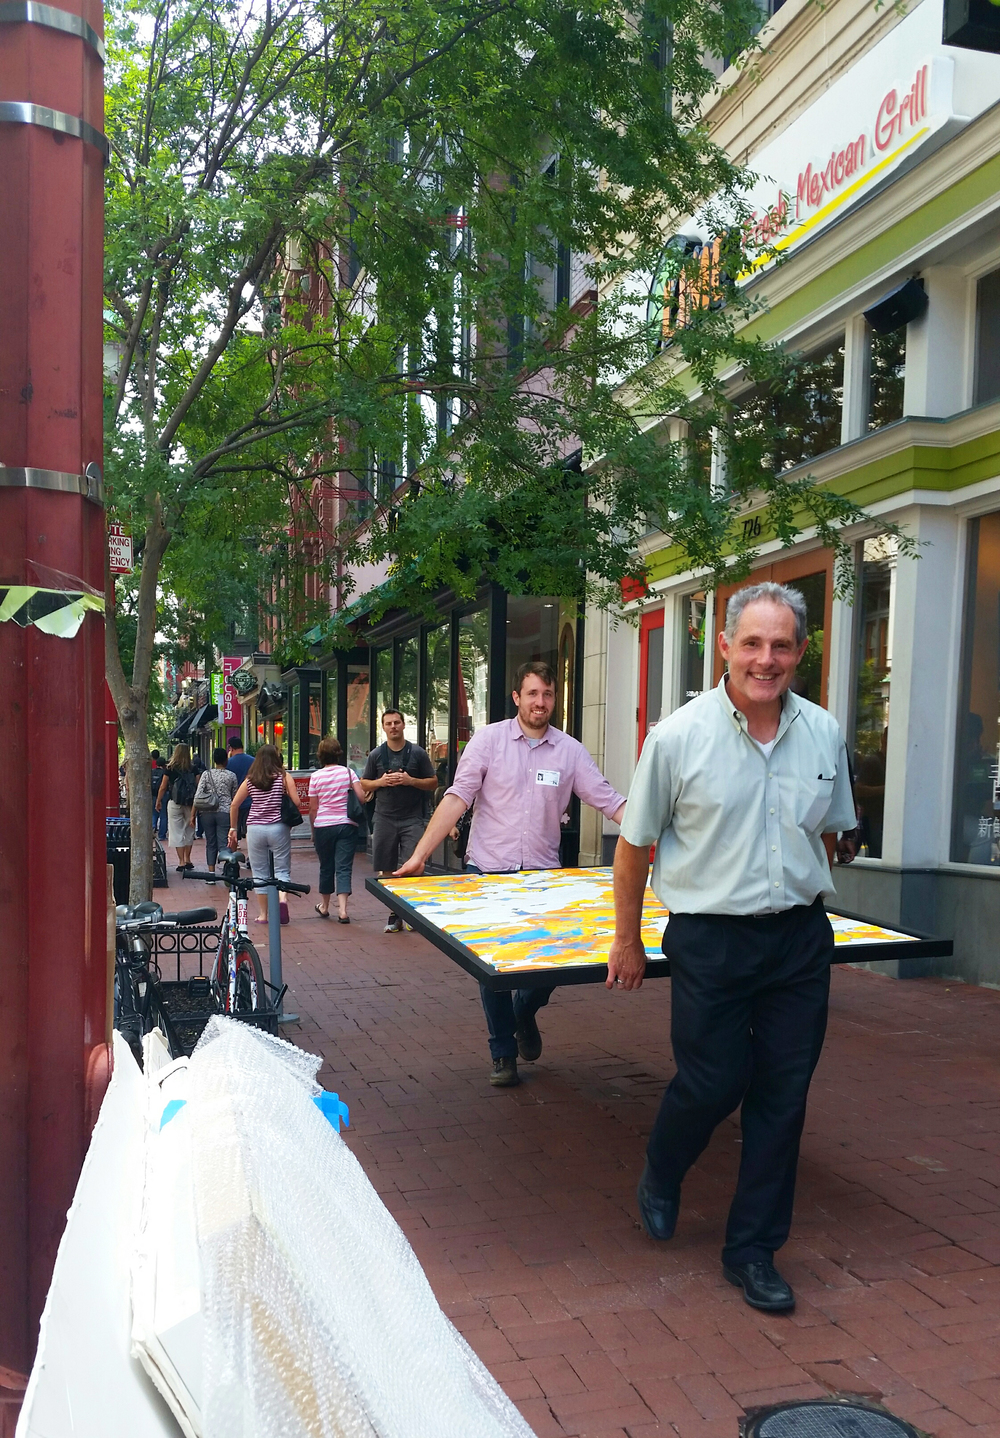 Jack and Andrew carry a large 4x7 foot painting down the streets of Chinatown as part of a slew of artwork we presented to a client.